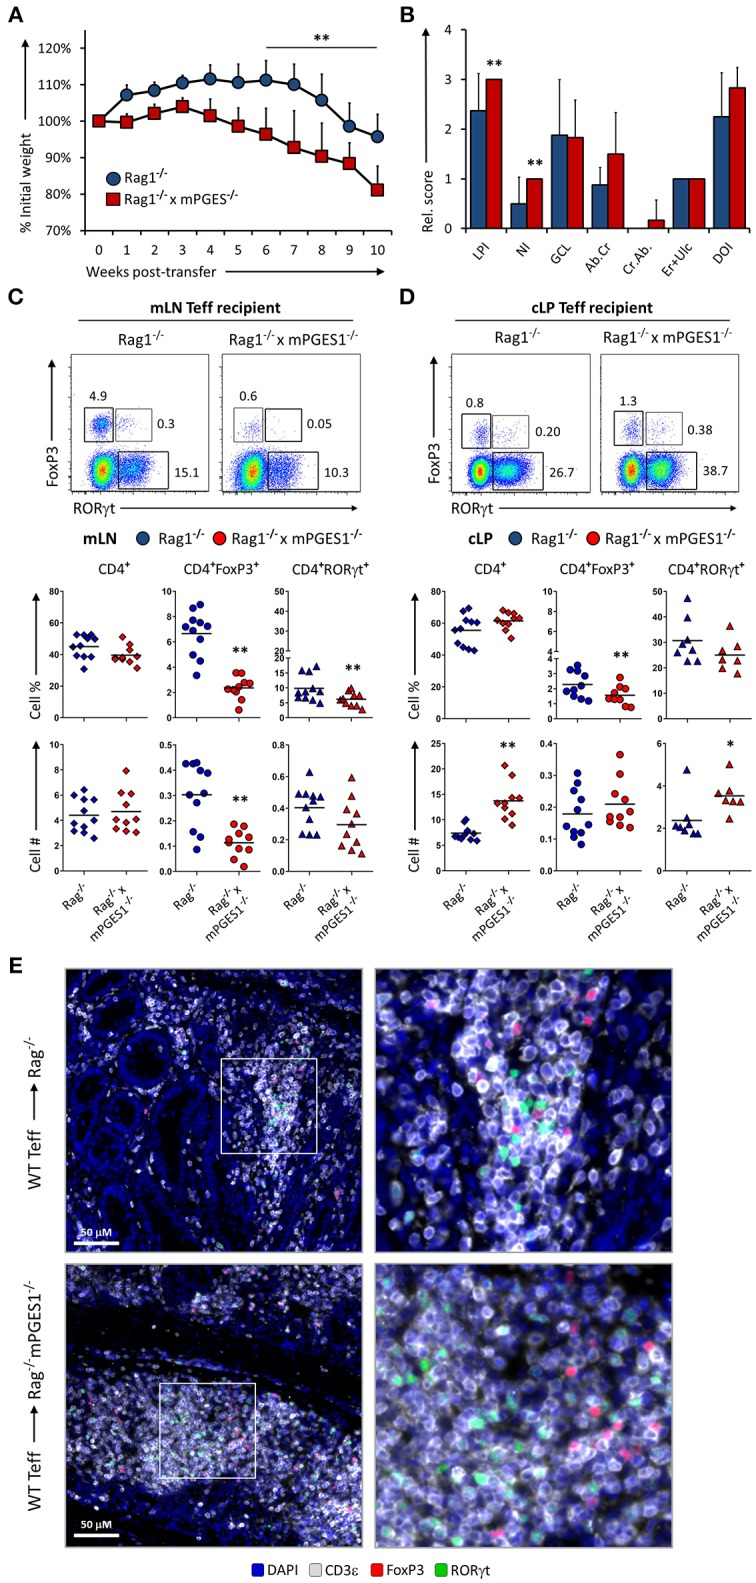 Paracrine mPGES-1-deficiency in non-lymphoid cells facilitates colitis by inhibiting generation of CD4 + FoxP3 + cells . (A) Weight loss in Rag1 −/− or Rag1 −/− x mPGES-1 −/− mice that received a transfer of WT Teff donor cells. (B) Segregated colon pathology scores from both cohorts. Flow cytometry analysis of (C) mLN and (D) cLP CD4 + populations at the end of the experiment (10 weeks), indicating intracellular expression of RORγt and FoxP3 in summarized results from 3 experiments. (E) Fluorescence microscopy analysis of colon sections denoting CD4 + cell infiltrates. Blue = DAPI, Gray = CD3ε, Green = RORγt, and Red = FoxP3. ** P